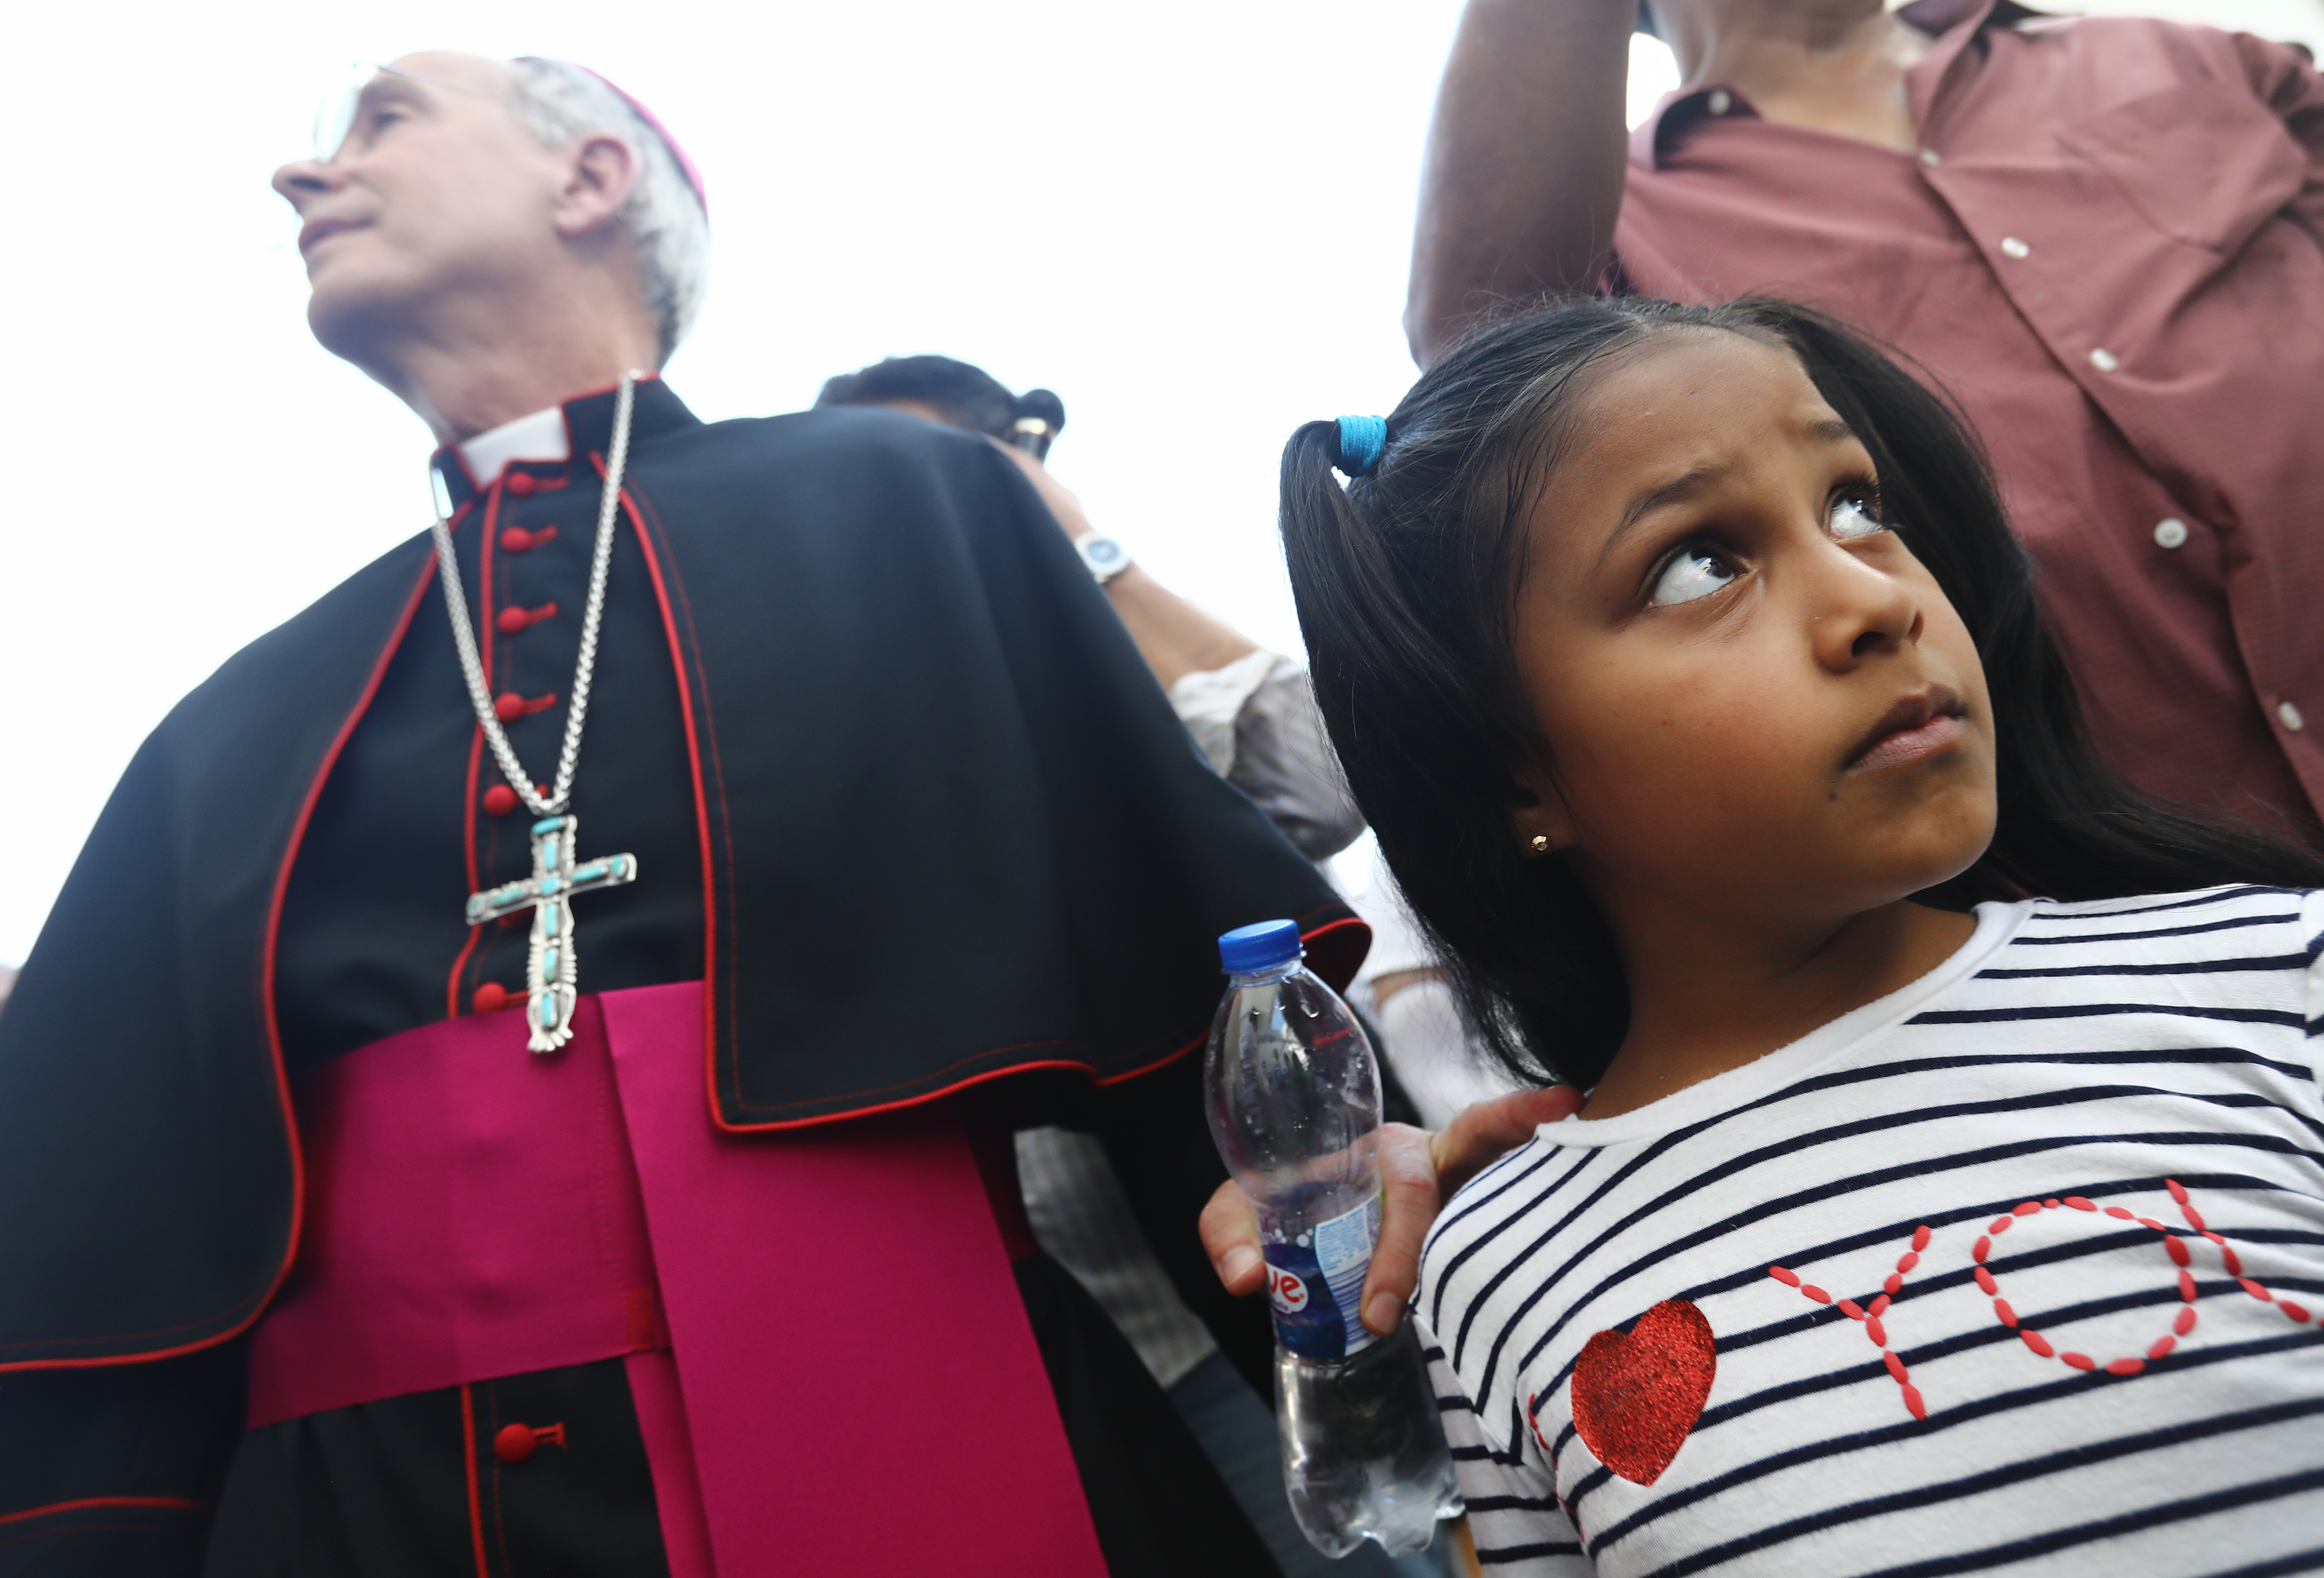 CIUDAD JUAREZ, MEXICO - JUNE 27: El Paso Bishop Mark Seitz (L) prepares to escort Celsia Palma, 9, from Honduras, before they cross the Paso Del Norte Port of Entry bridge towards the U.S. on June 27, 2019, in Ciudad Juarez, Mexico. Seitz escorted Celsia and other family members across the port of entry to be processed by U.S. immigration authorities. Earlier, Seitz and clergy from the Diocese of Ciudad Juarez held a prayer with migrants who were recently returned to Ciudad Juarez from El Paso because of the controversial 'Remain in Mexico' policy. (Photo by Mario Tama/Getty Images)